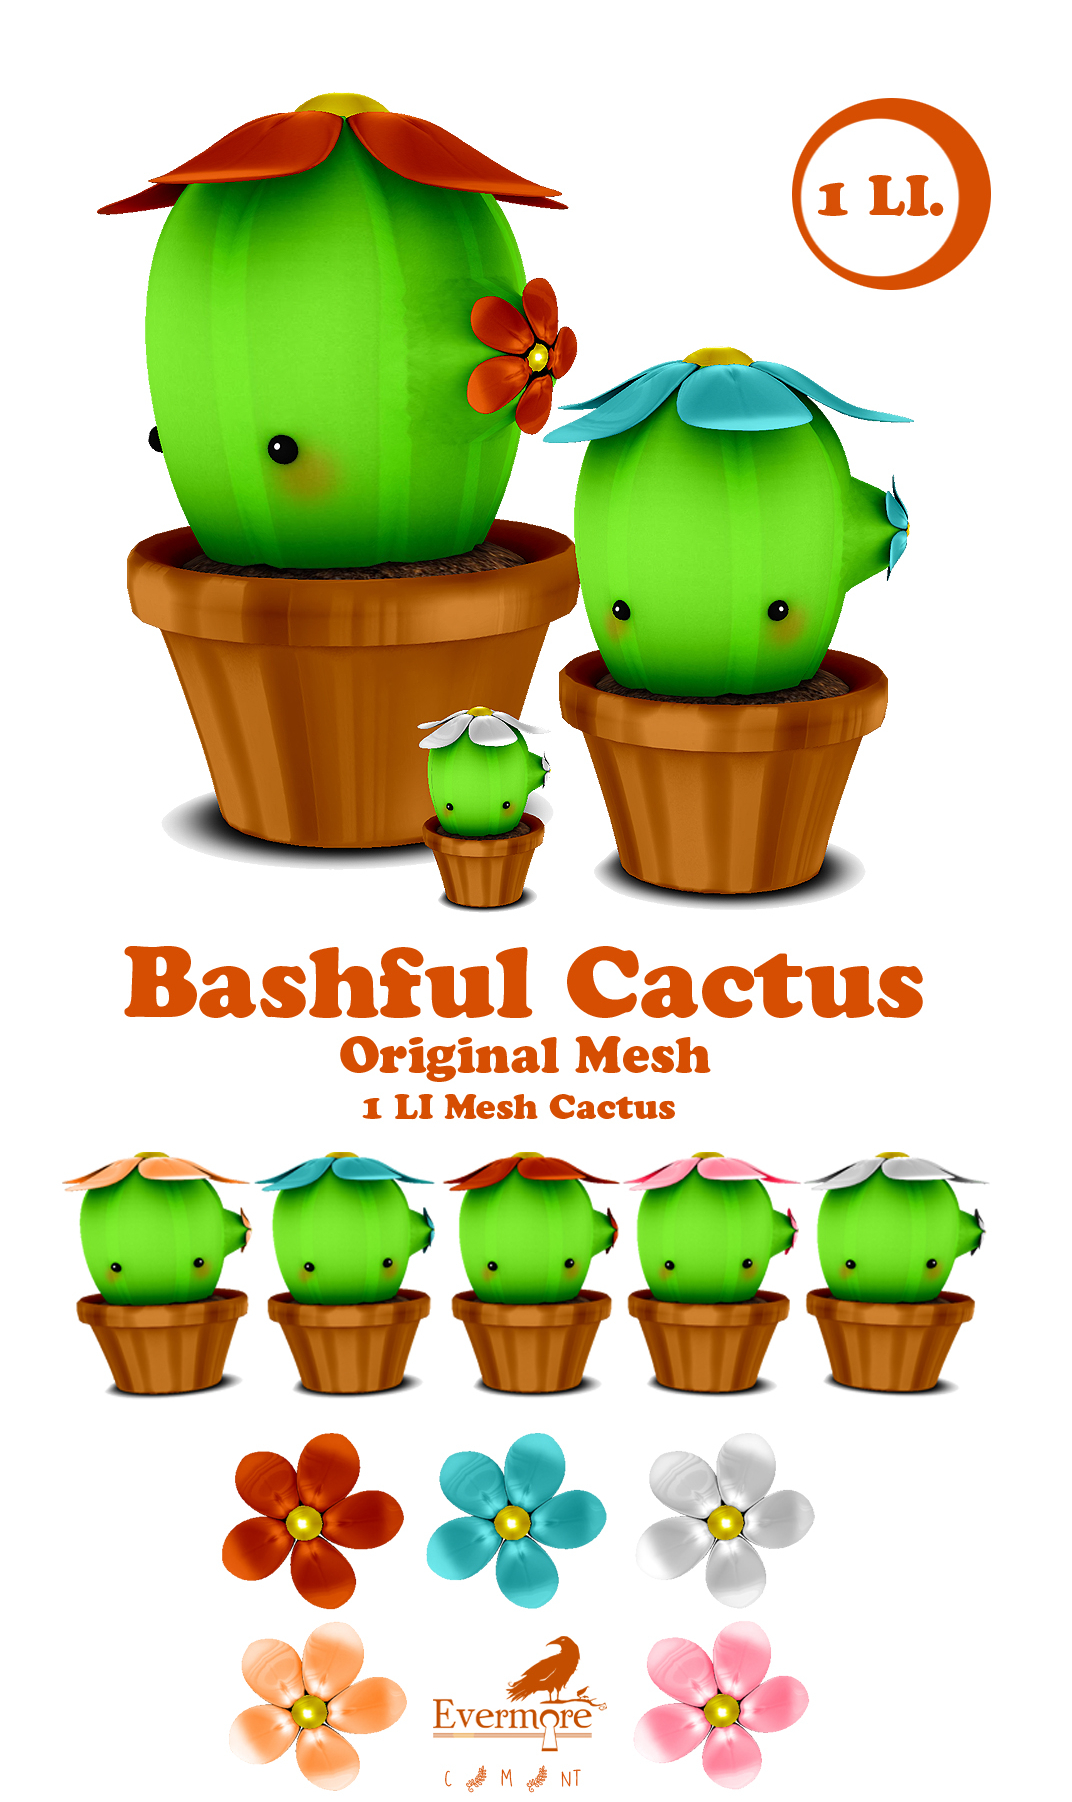 Evermore. Bashful Cactus AD.jpg